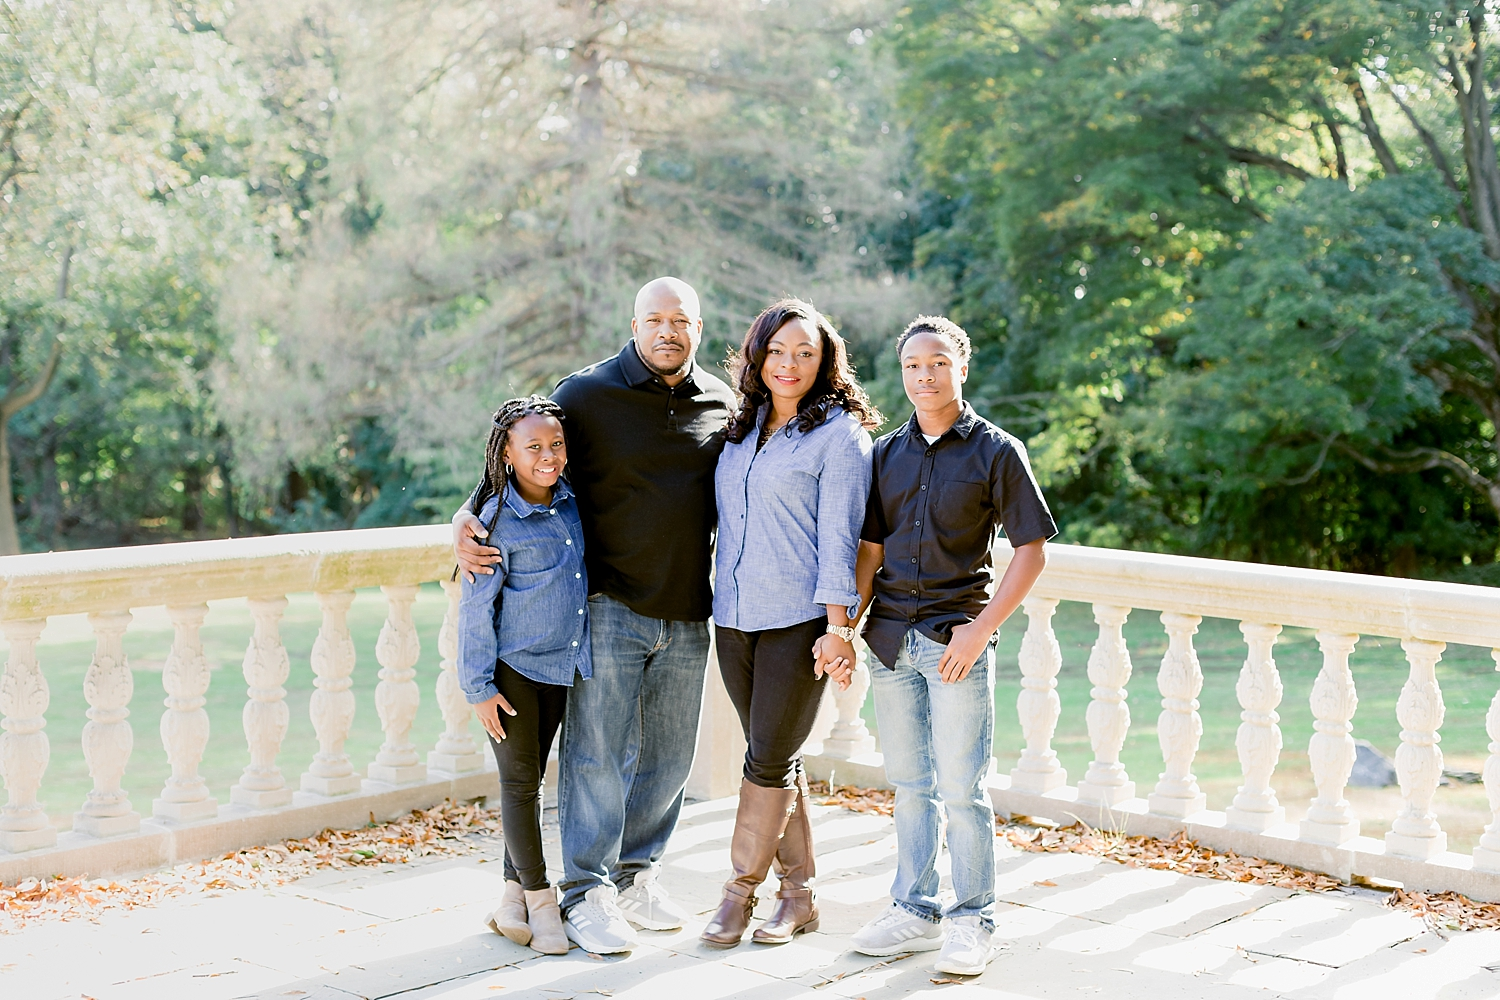 Curtis Hall Arboretum family photo session photographed by Ann Blake Photography